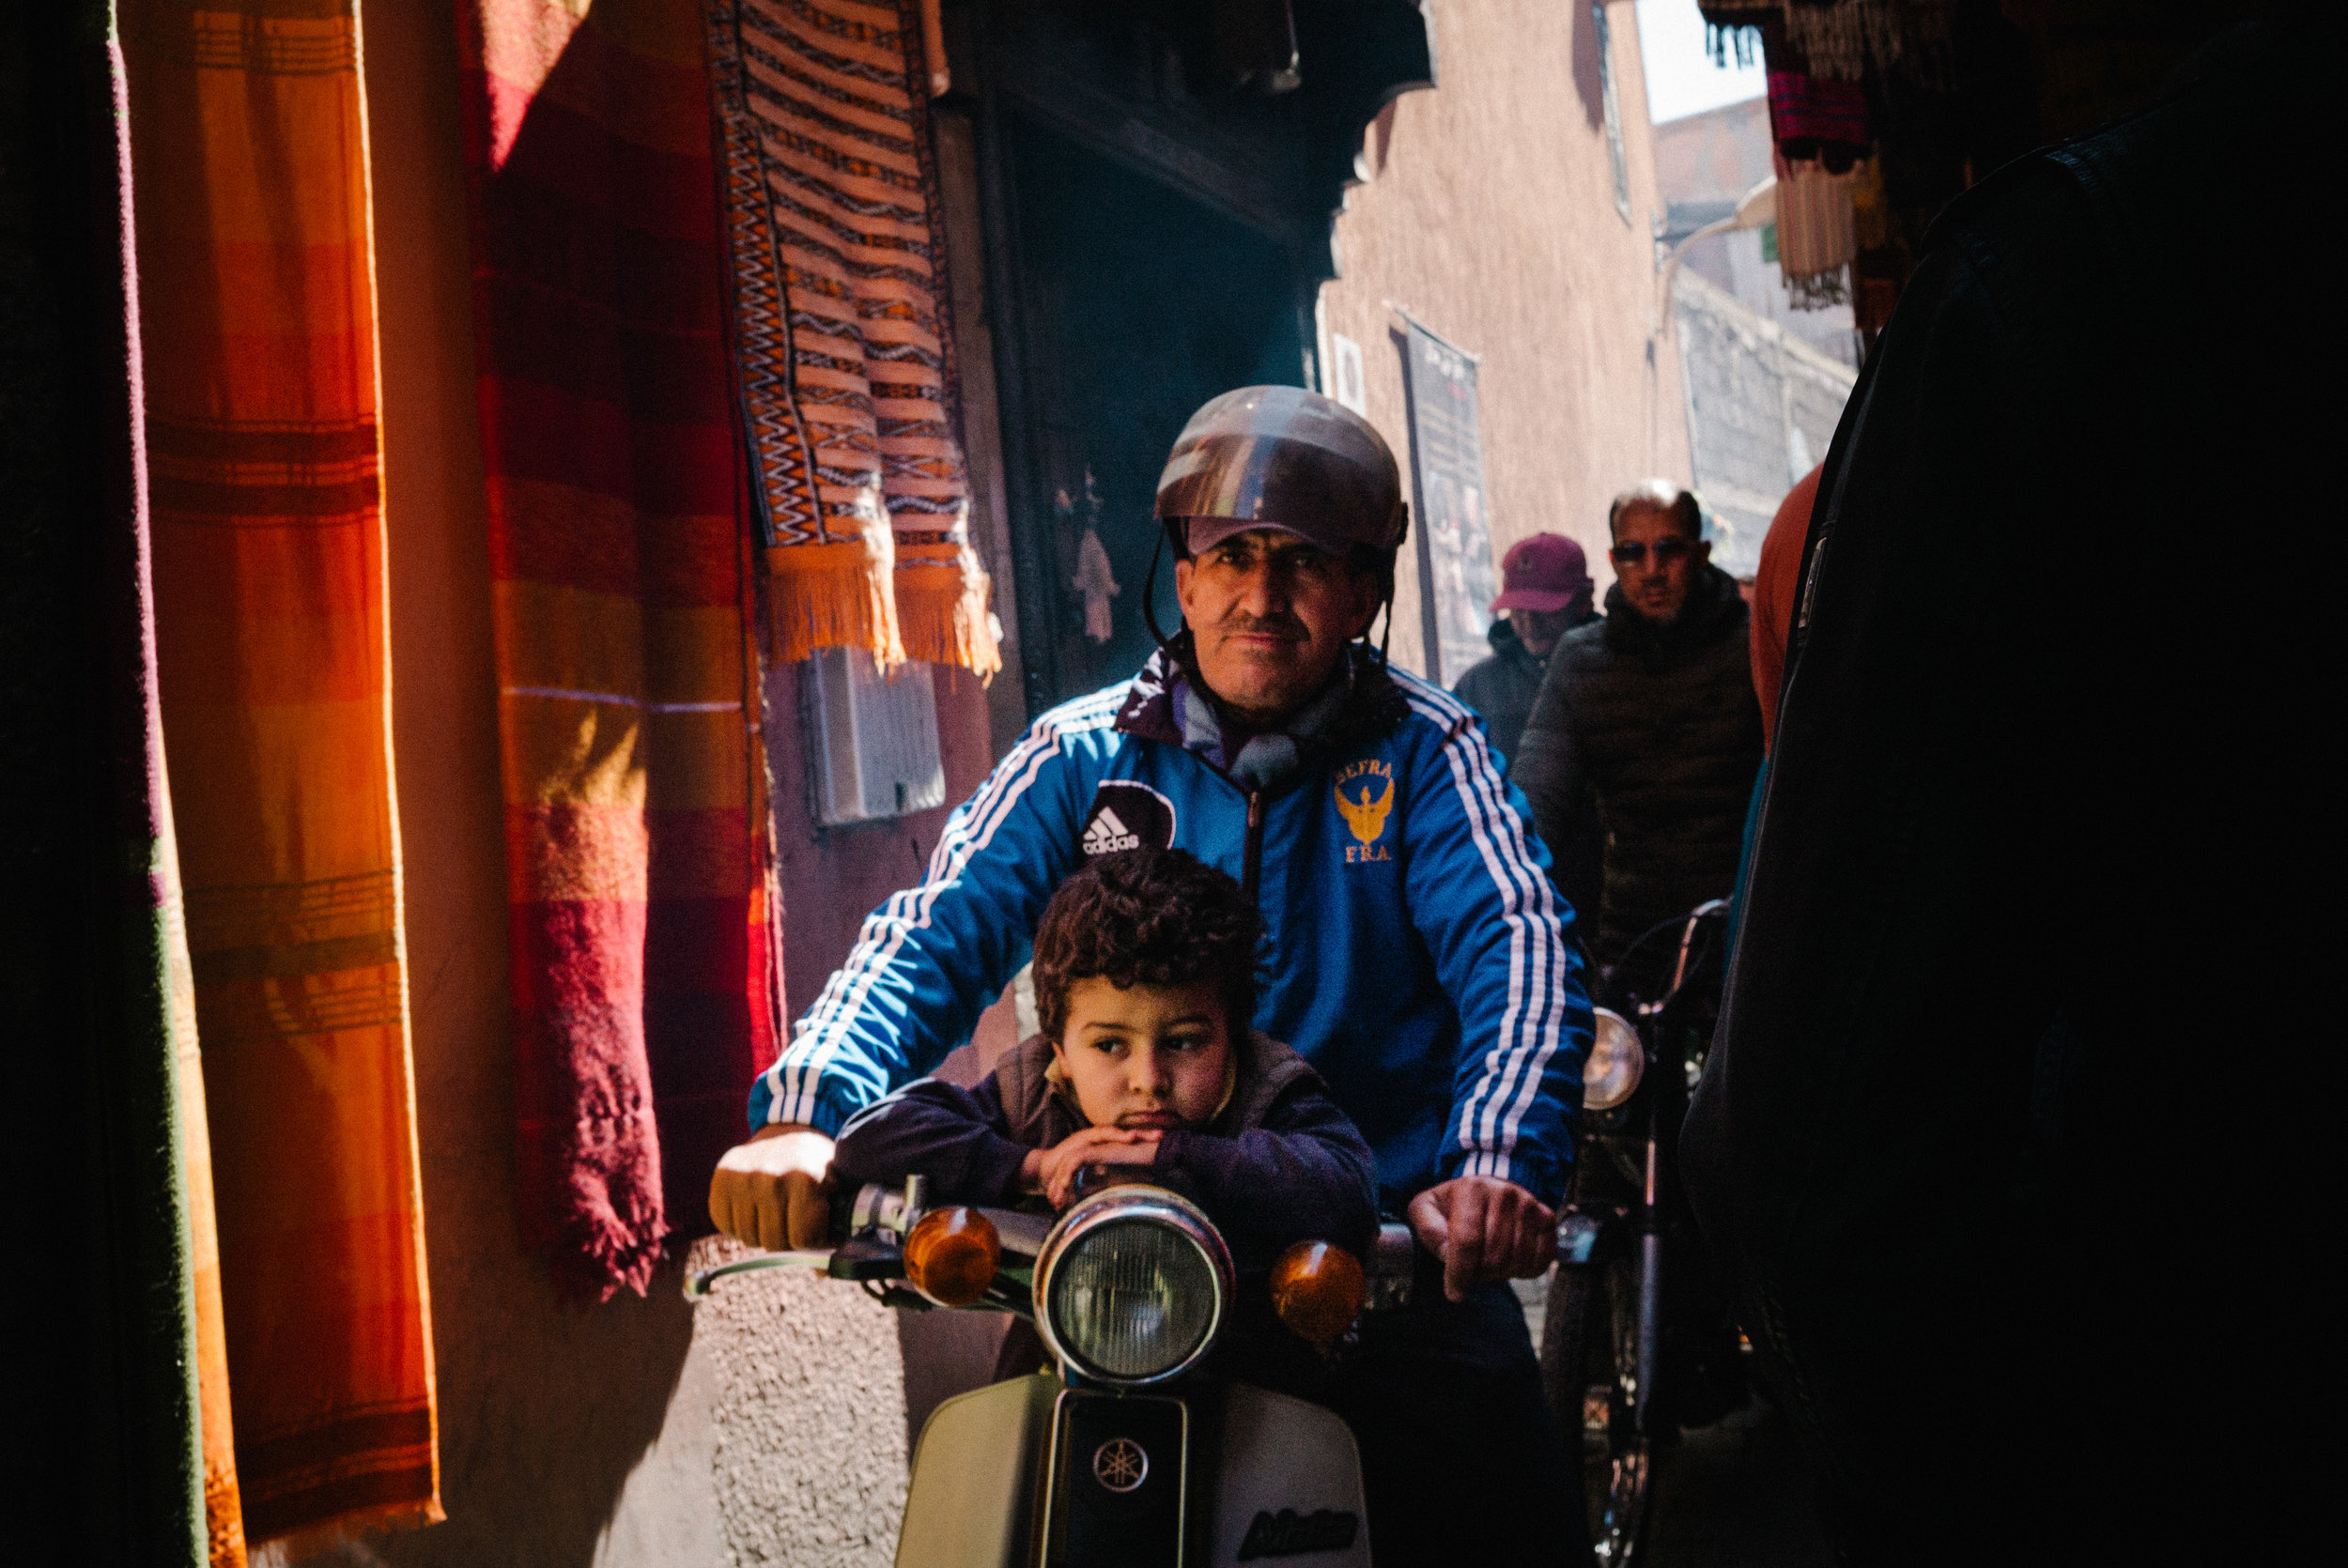 A father and son navigate the narrow streets of the medina - Clifford Darby 2018